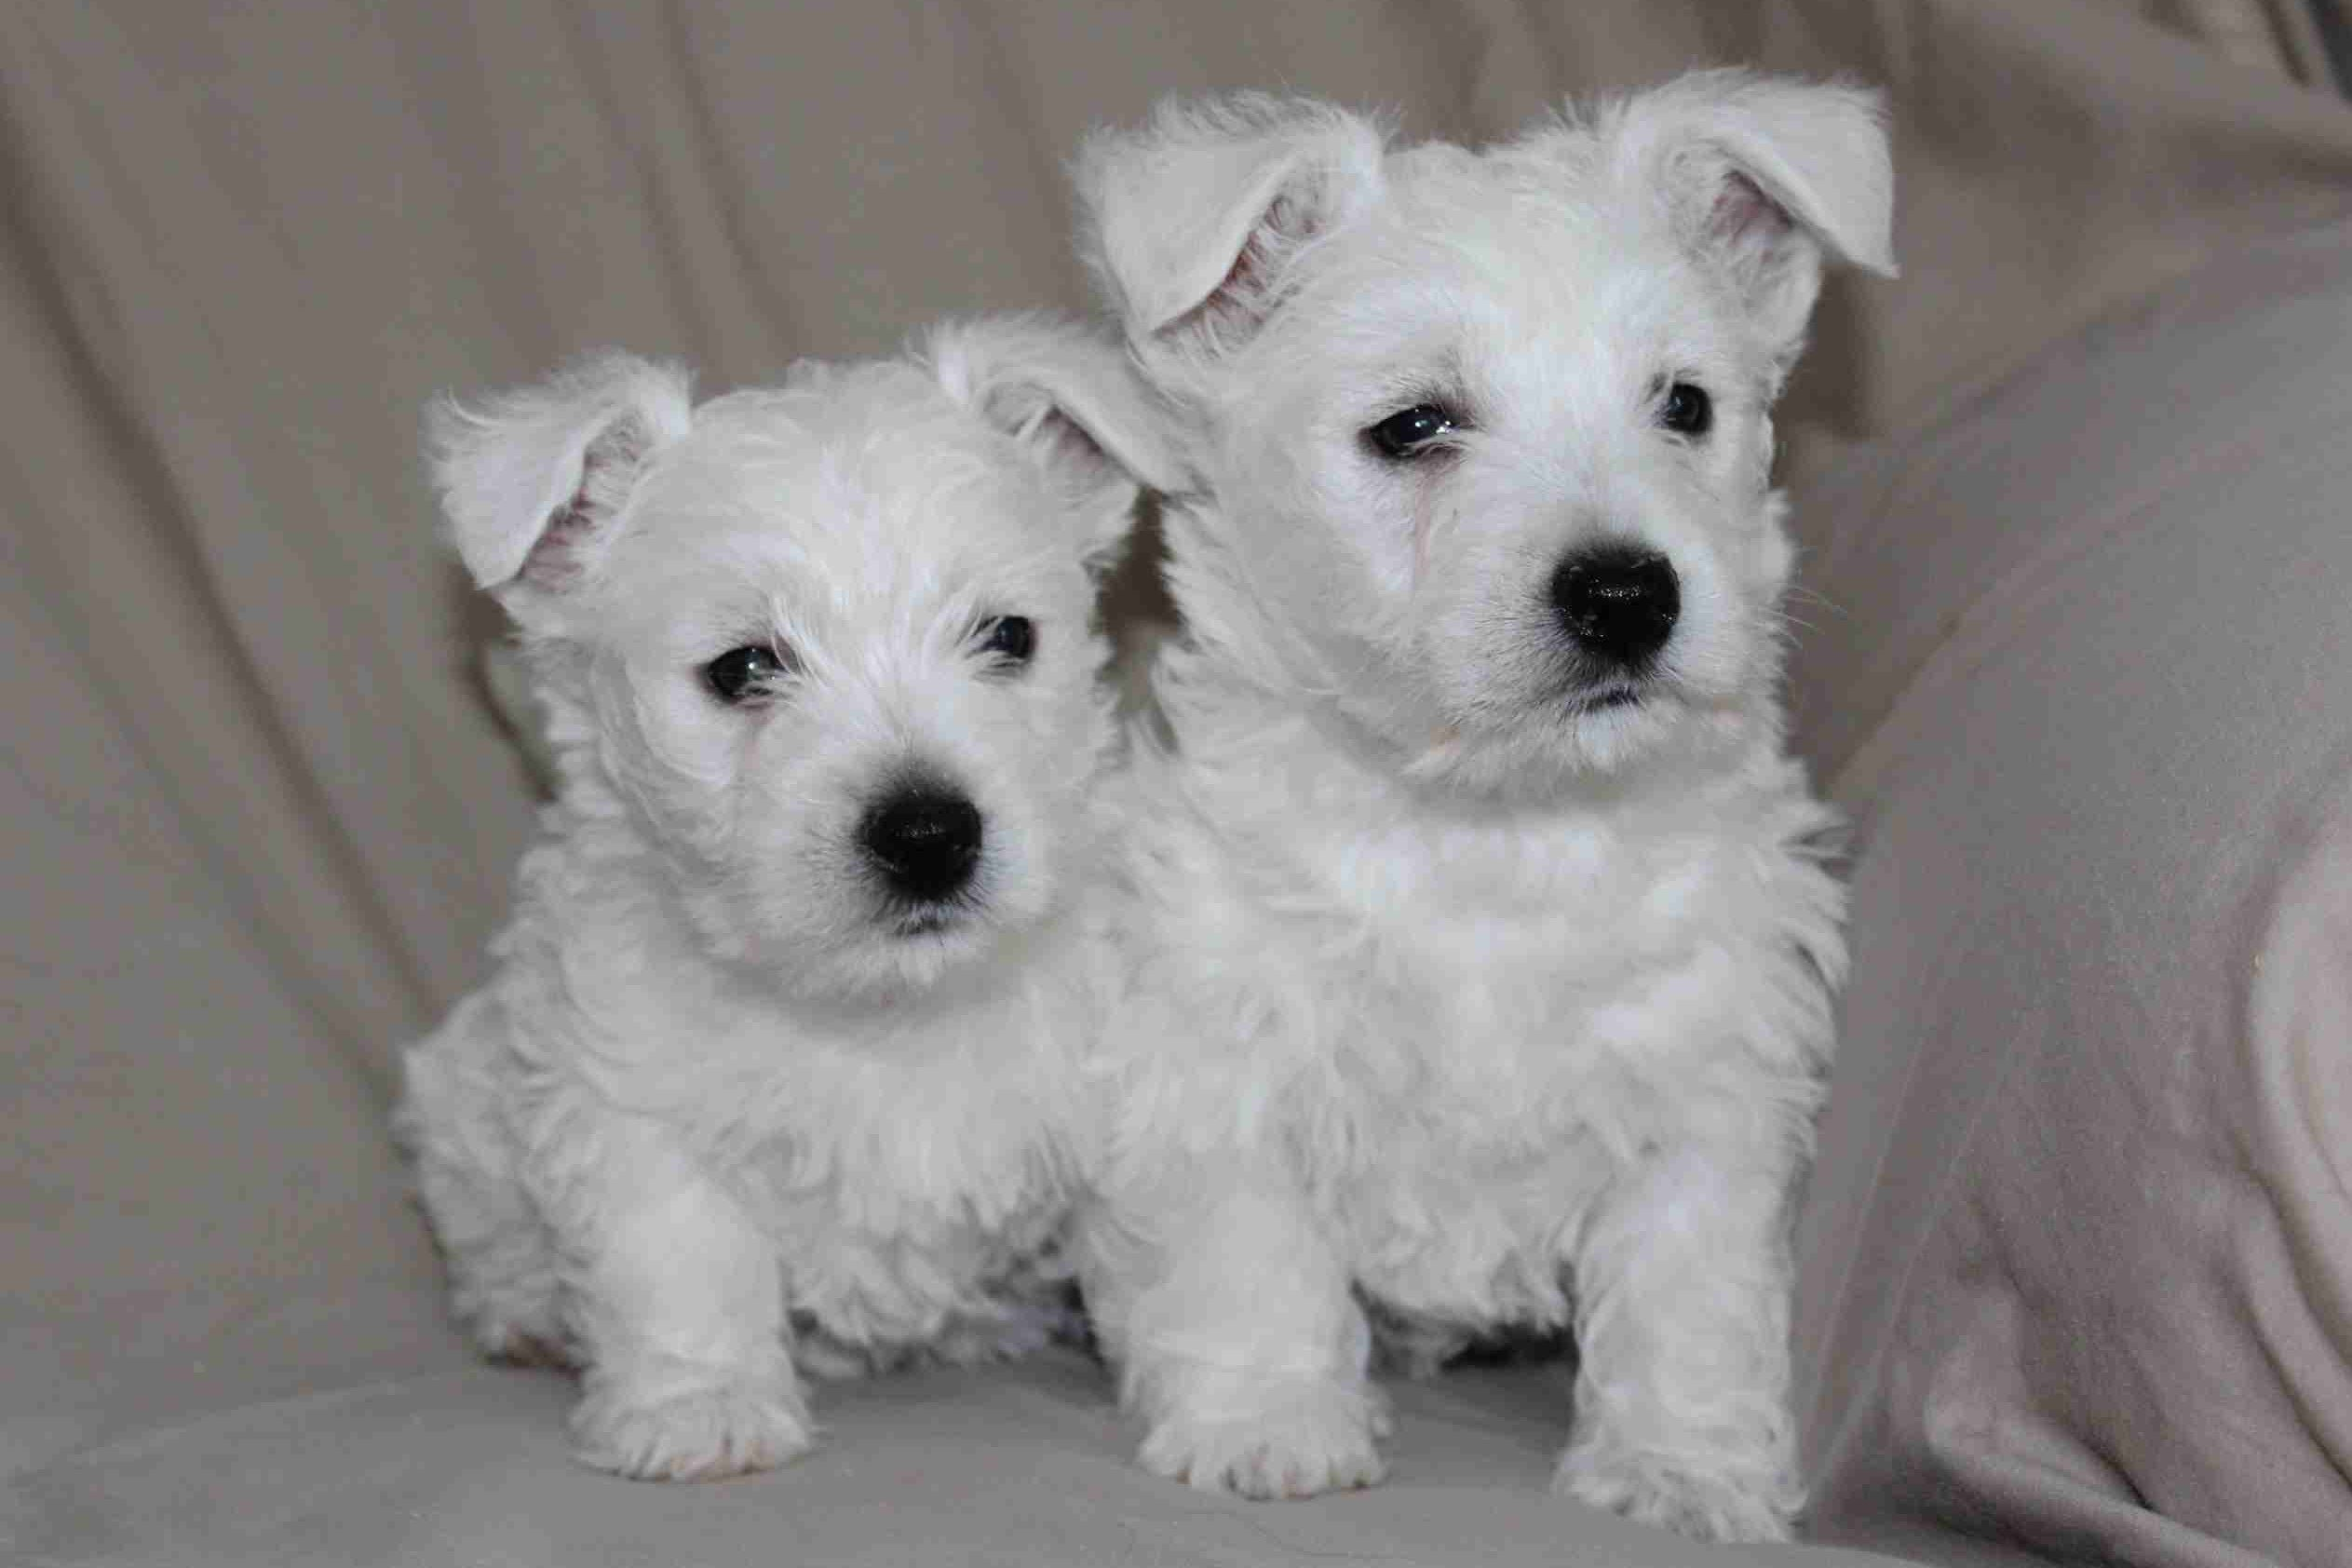 Holly Stellitano Has West Highland White Terrier Puppies For Sale